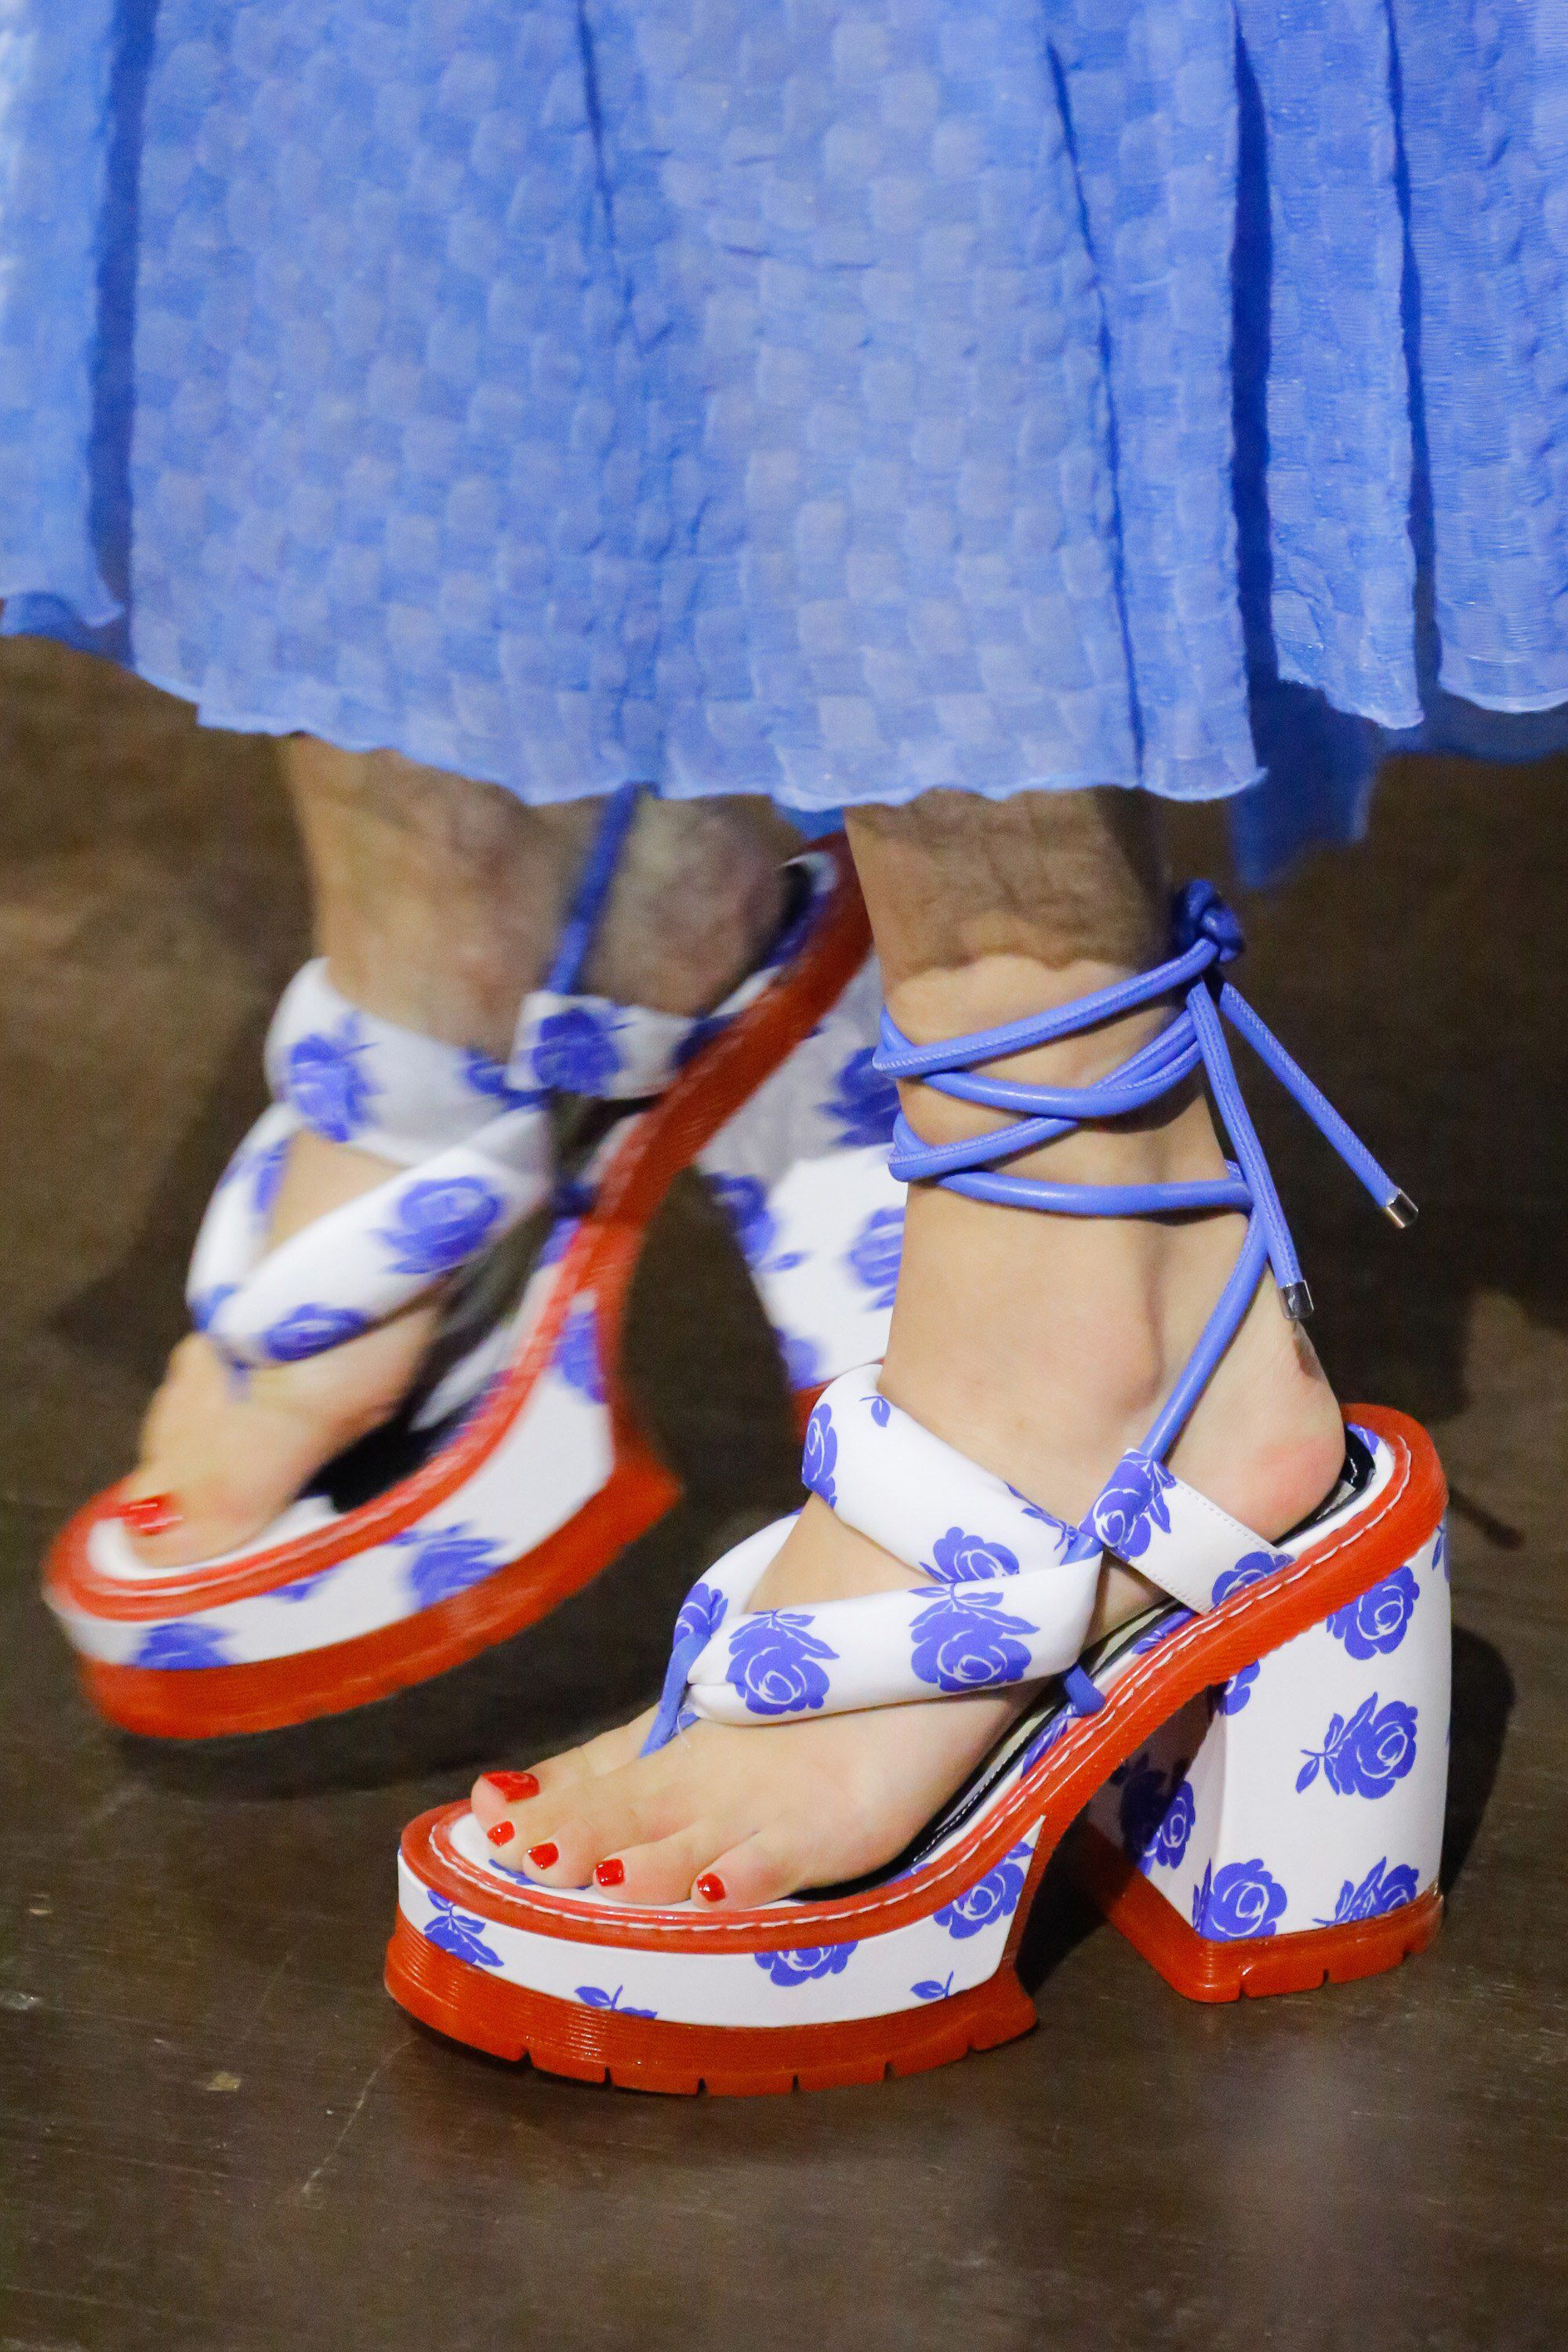 53348509e02 Kenzo Spring 2019 Ready-to-Wear | STYLE. in 2019 | Shoes, Fashion ...